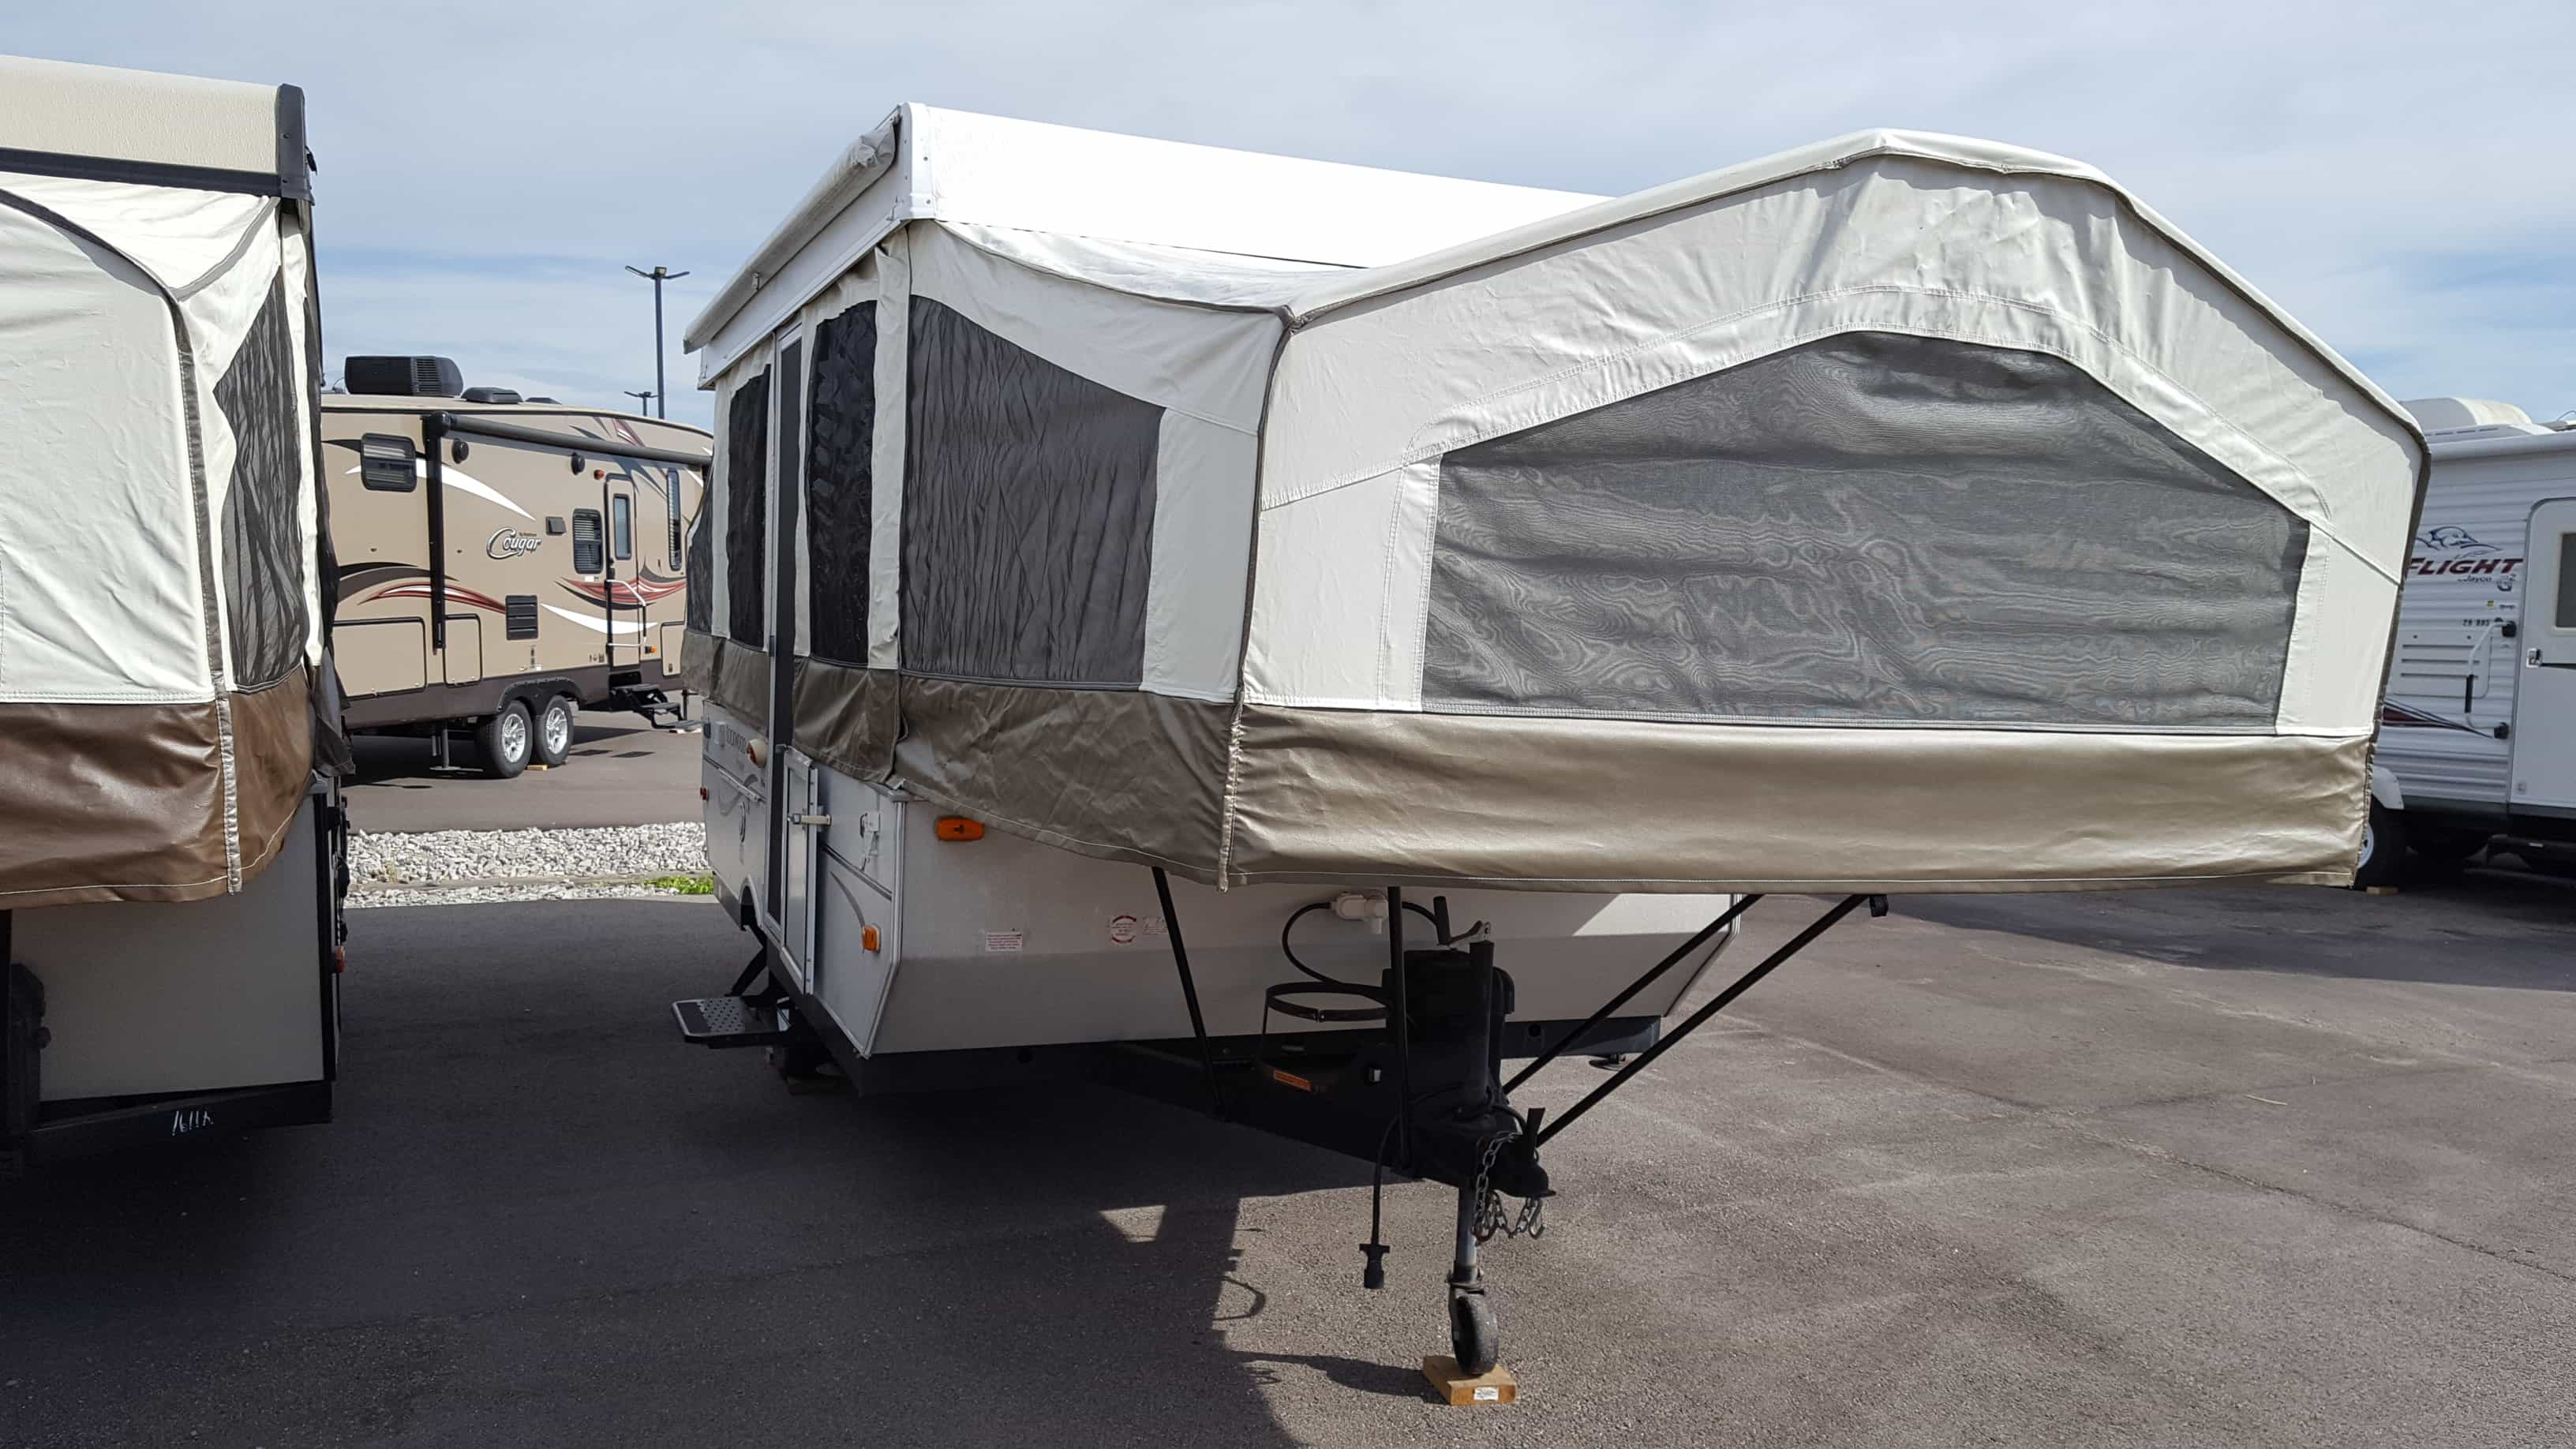 USED 2008 Forest River ROCKWOOD 2270 - American RV